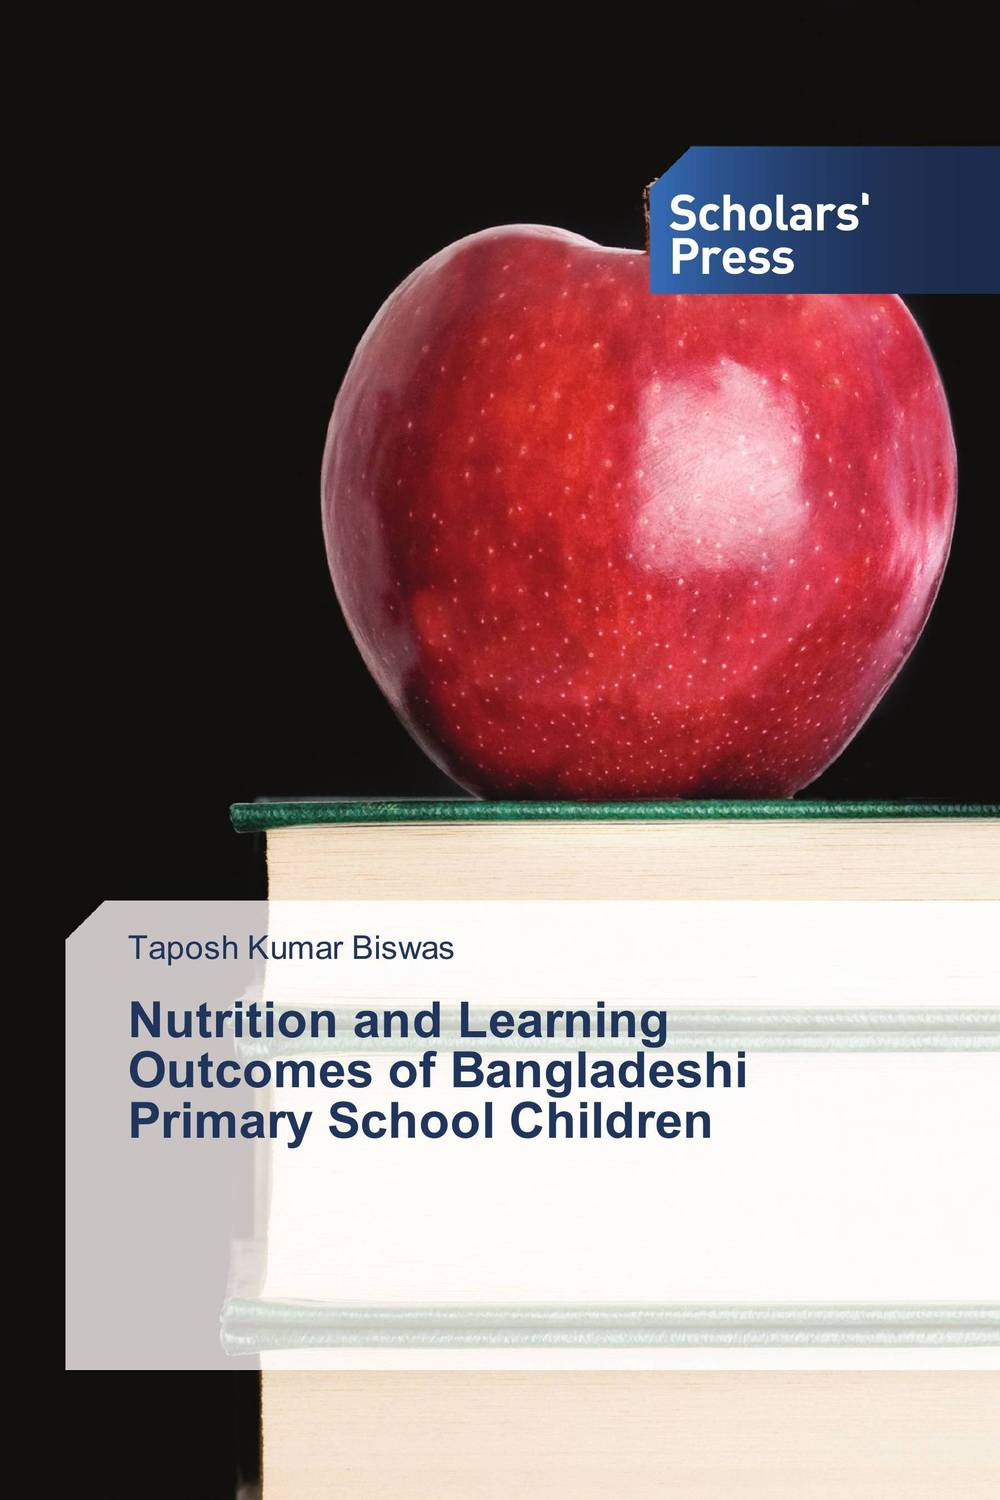 Nutrition and Learning Outcomes of Bangladeshi Primary School Children nutrition and learning outcomes of bangladeshi primary school children